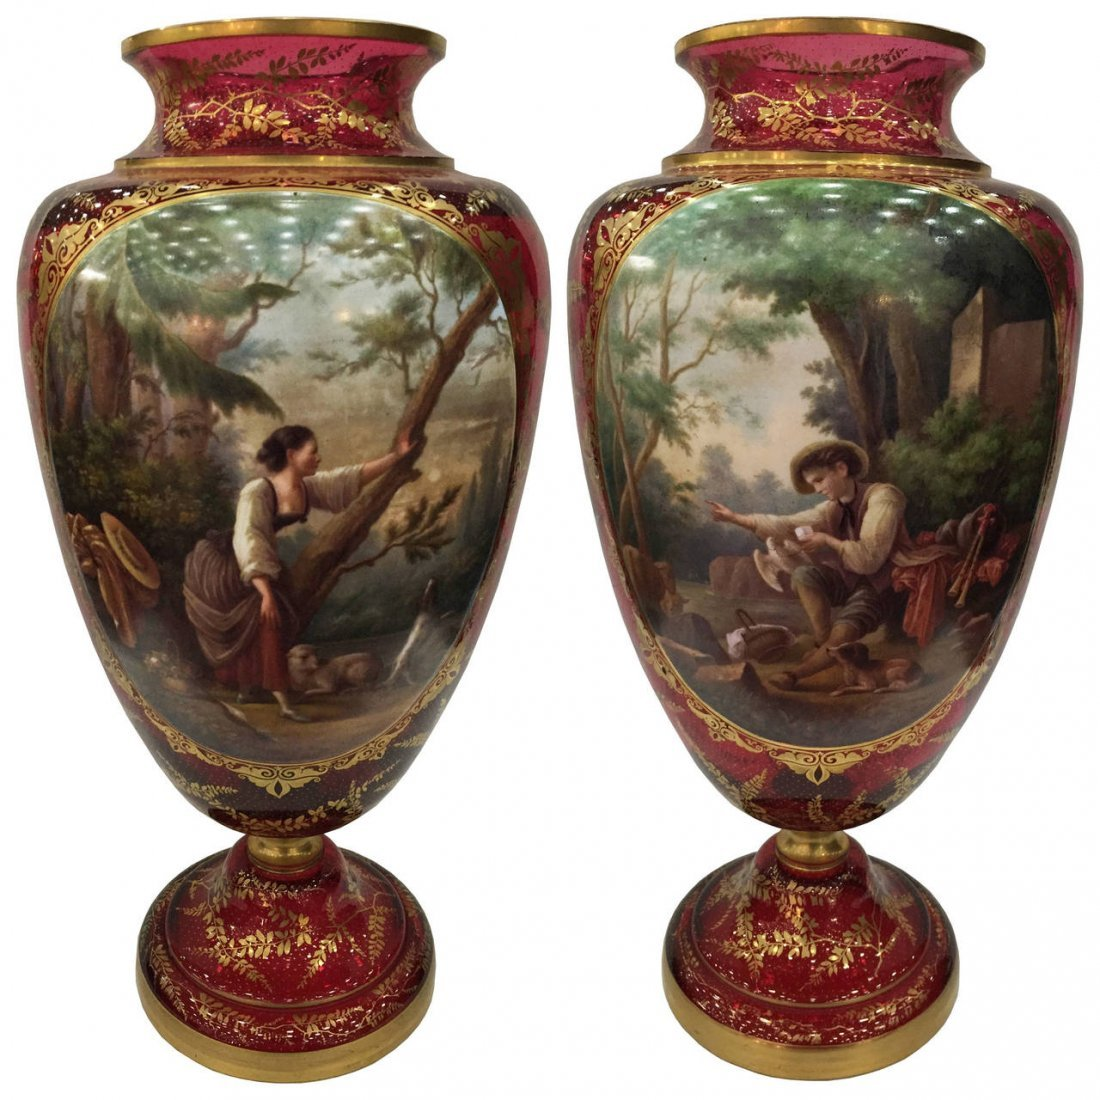 Rare and Important Bohemian Portrait Vases, 19thc.